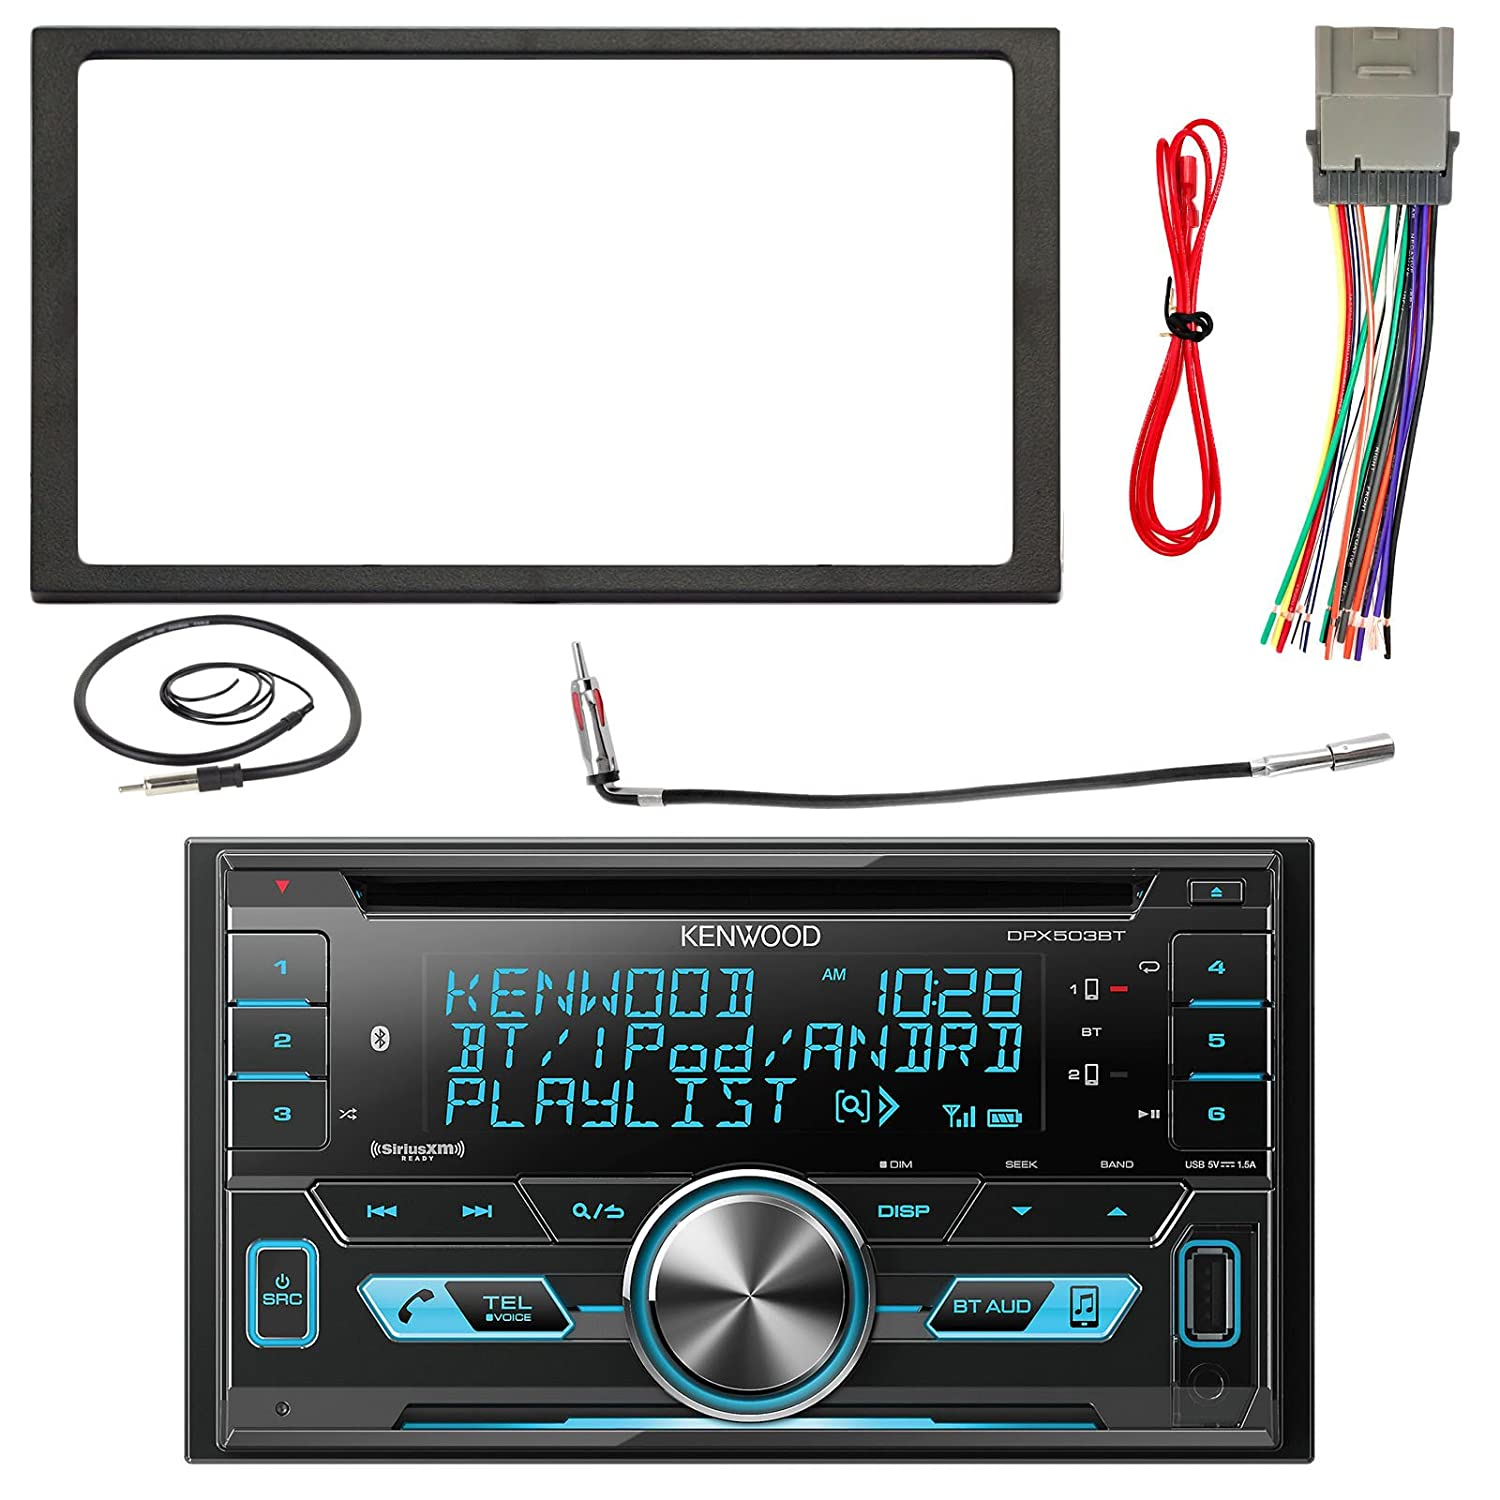 Kenwood Dpx502bt 2 Din Bluetooth Cd Mp3 Reciever With Boss Radio Bv9364b Wiring Harness Metra Installation Kit Wire And Enrock 22 Inch Antenna Car Electronics